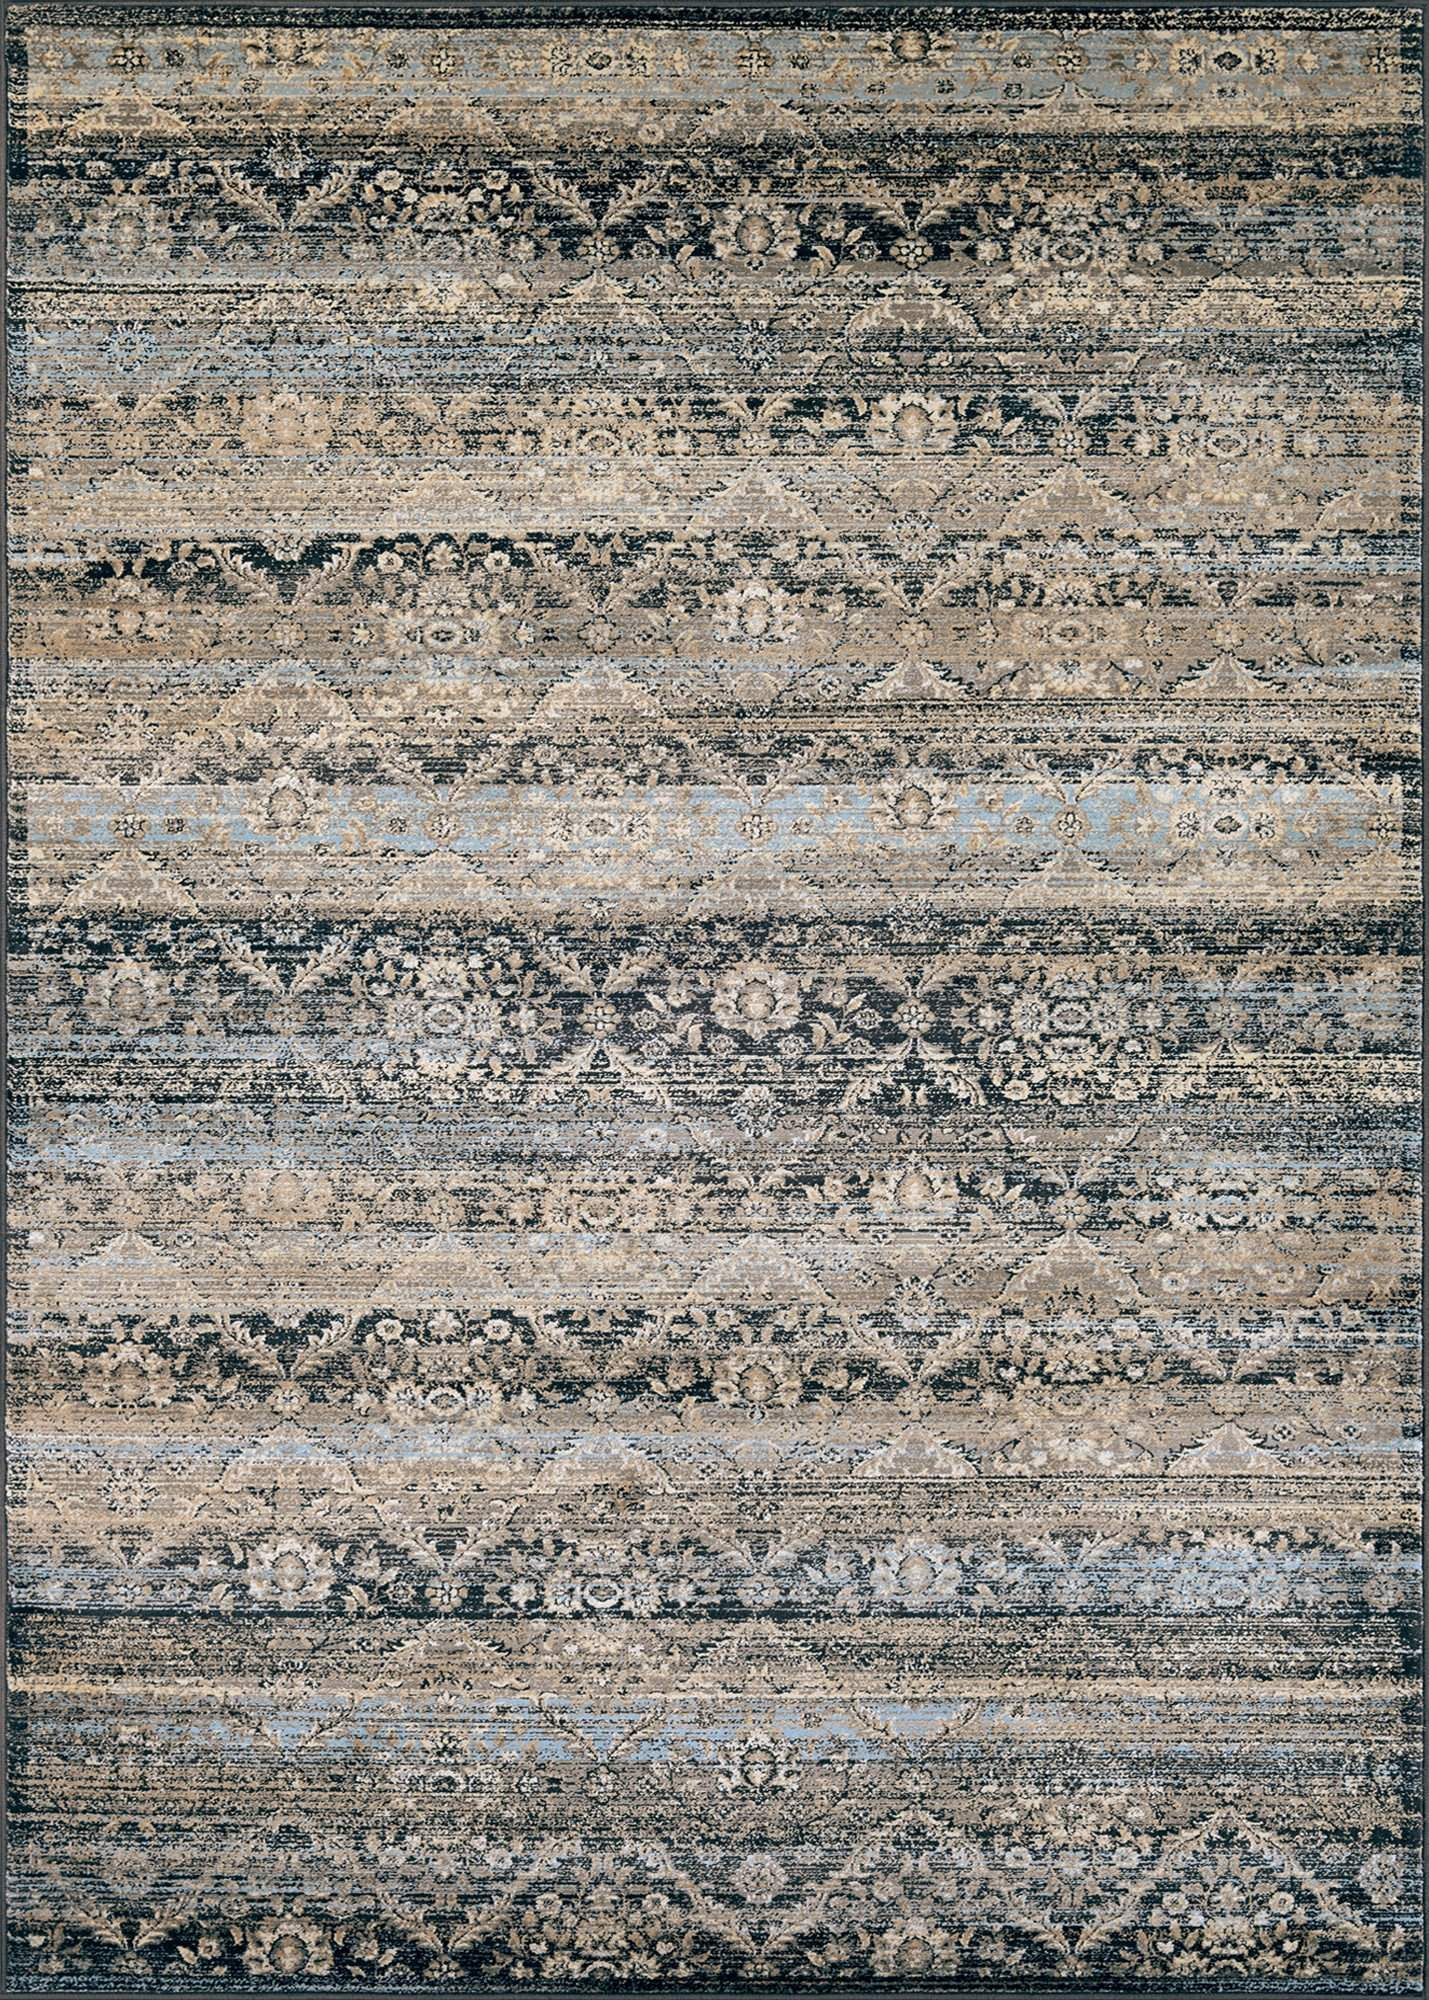 home overstock lr x helm indoor garden outdoor shipping rugs product nautical captiva today area free rug